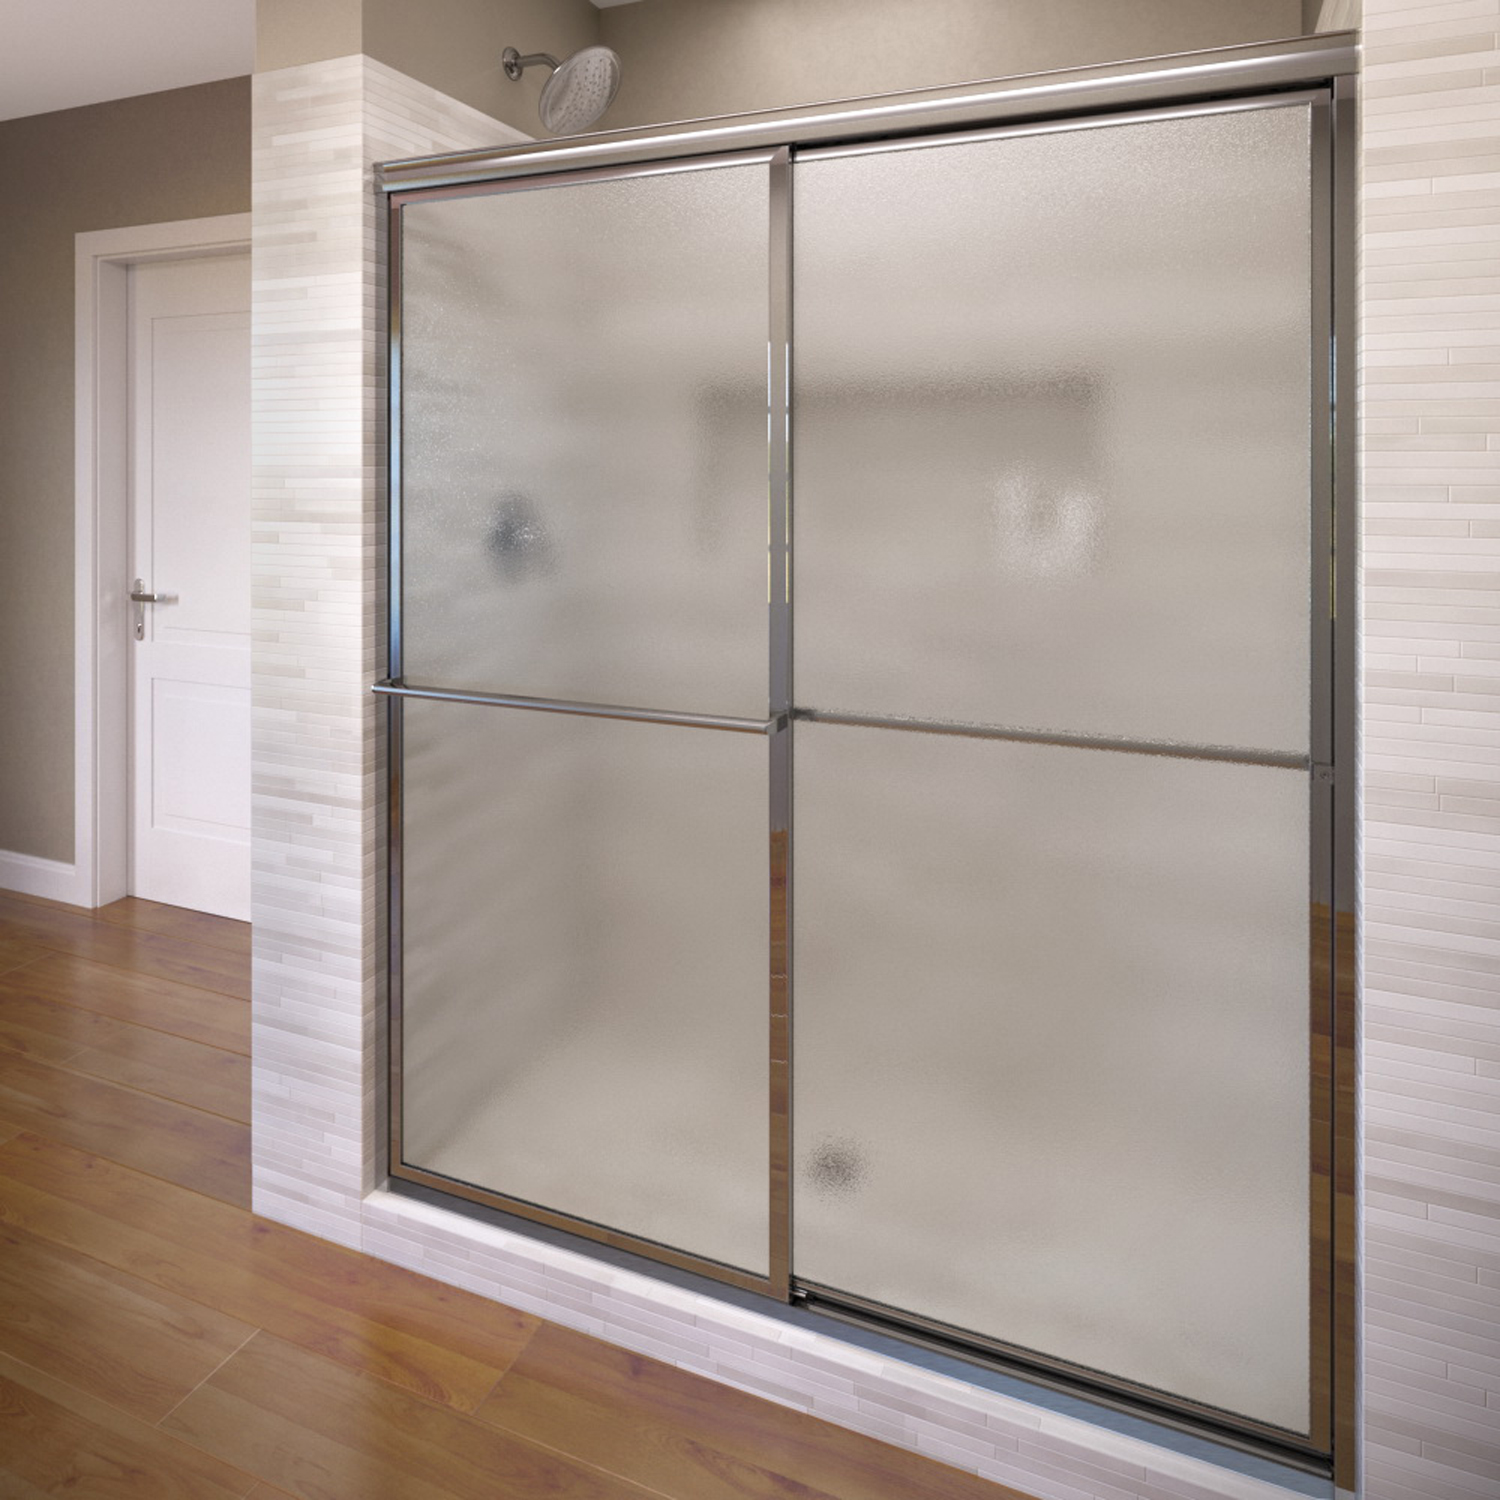 Basco 7150 60 60 Deluxe Sliding Shower Enclosure With Obscure Glass